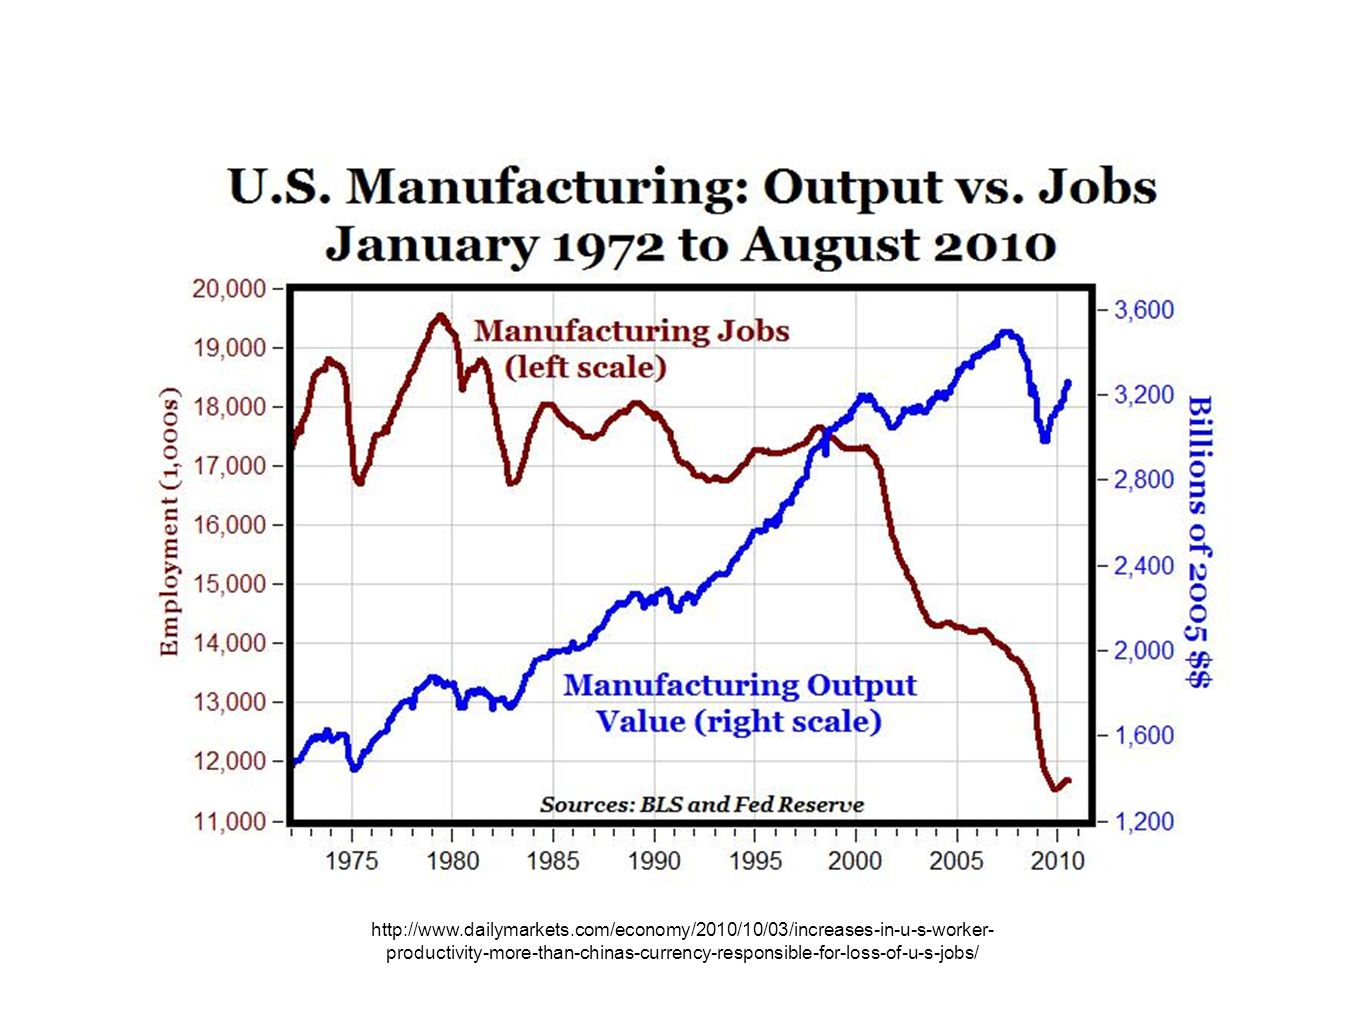 http://www.dailymarkets.com/economy/2010/10/03/increases-in-u-s-worker- productivity-more-than-chinas-currency-responsible-for-loss-of-u-s-jobs/